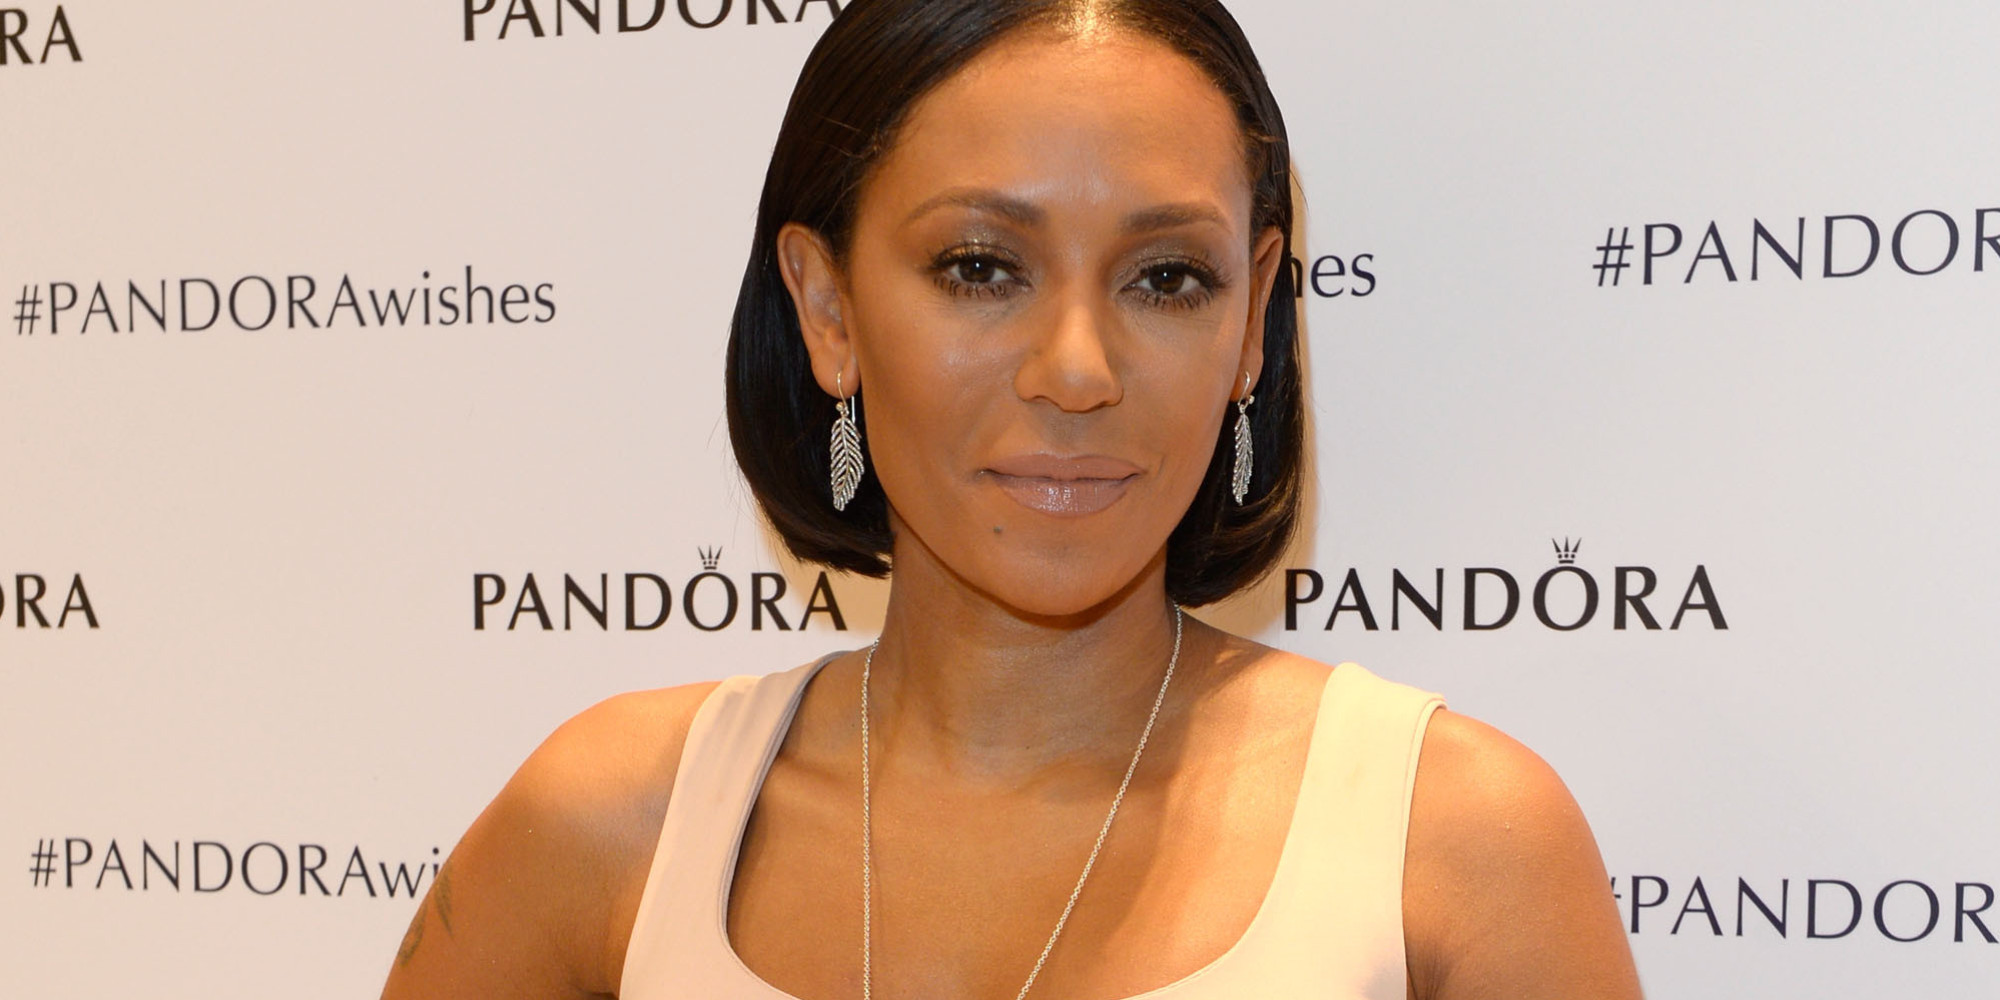 mel b sex video Sep 2014  Former Spice girl Mel B's sex obsession is reportedly driving her friends and  family away.